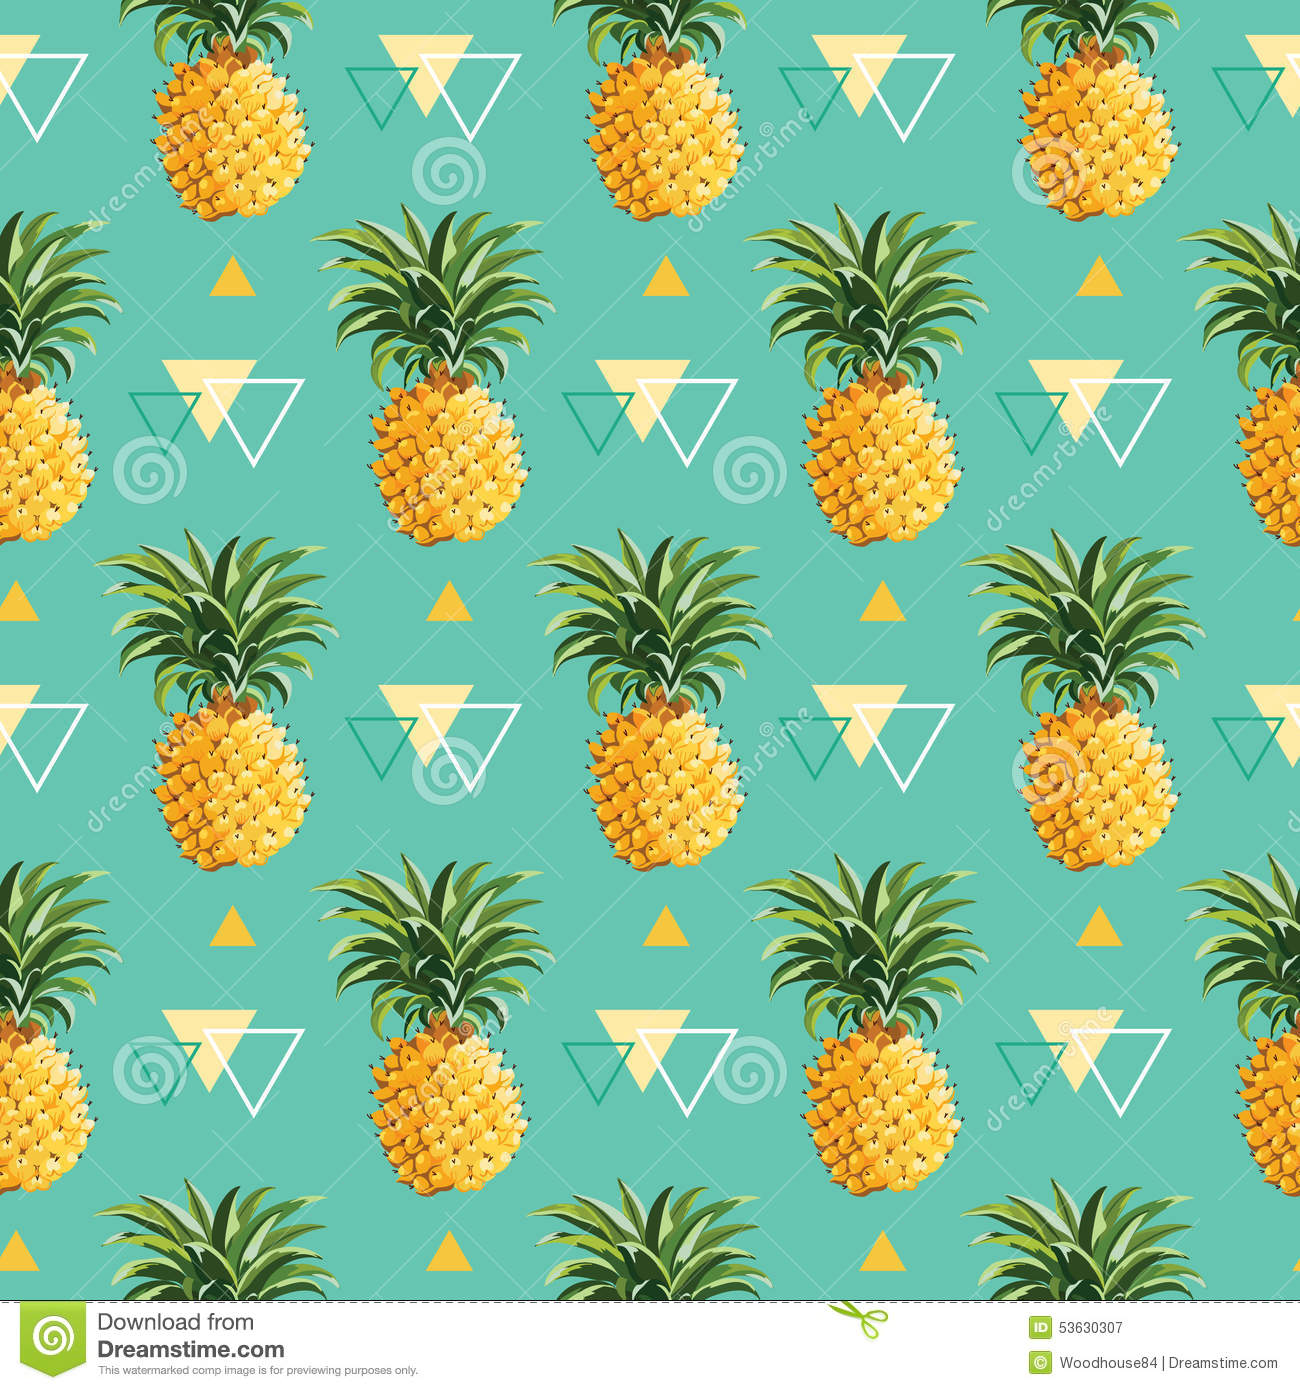 Cute Wallpapers Green Mint Geometric Pineapple Background Stock Vector Illustration